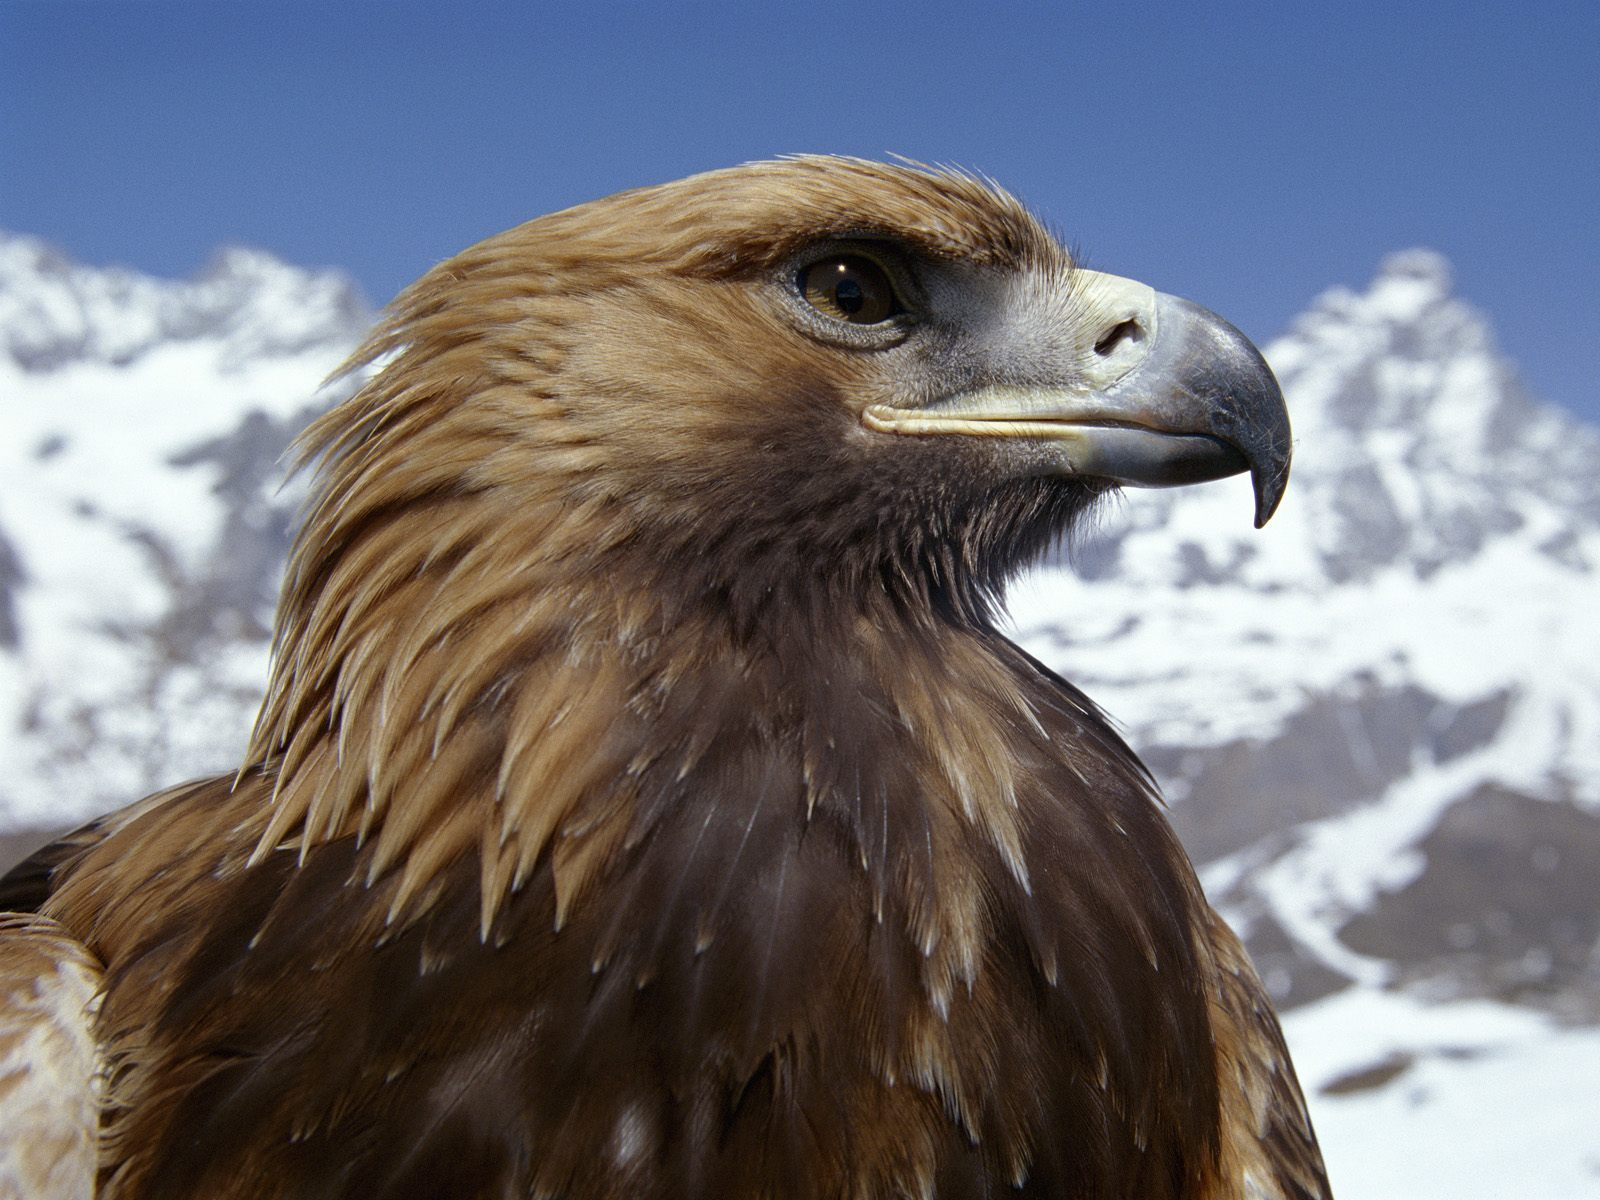 11747 download wallpaper Animals, Birds, Eagles screensavers and pictures for free